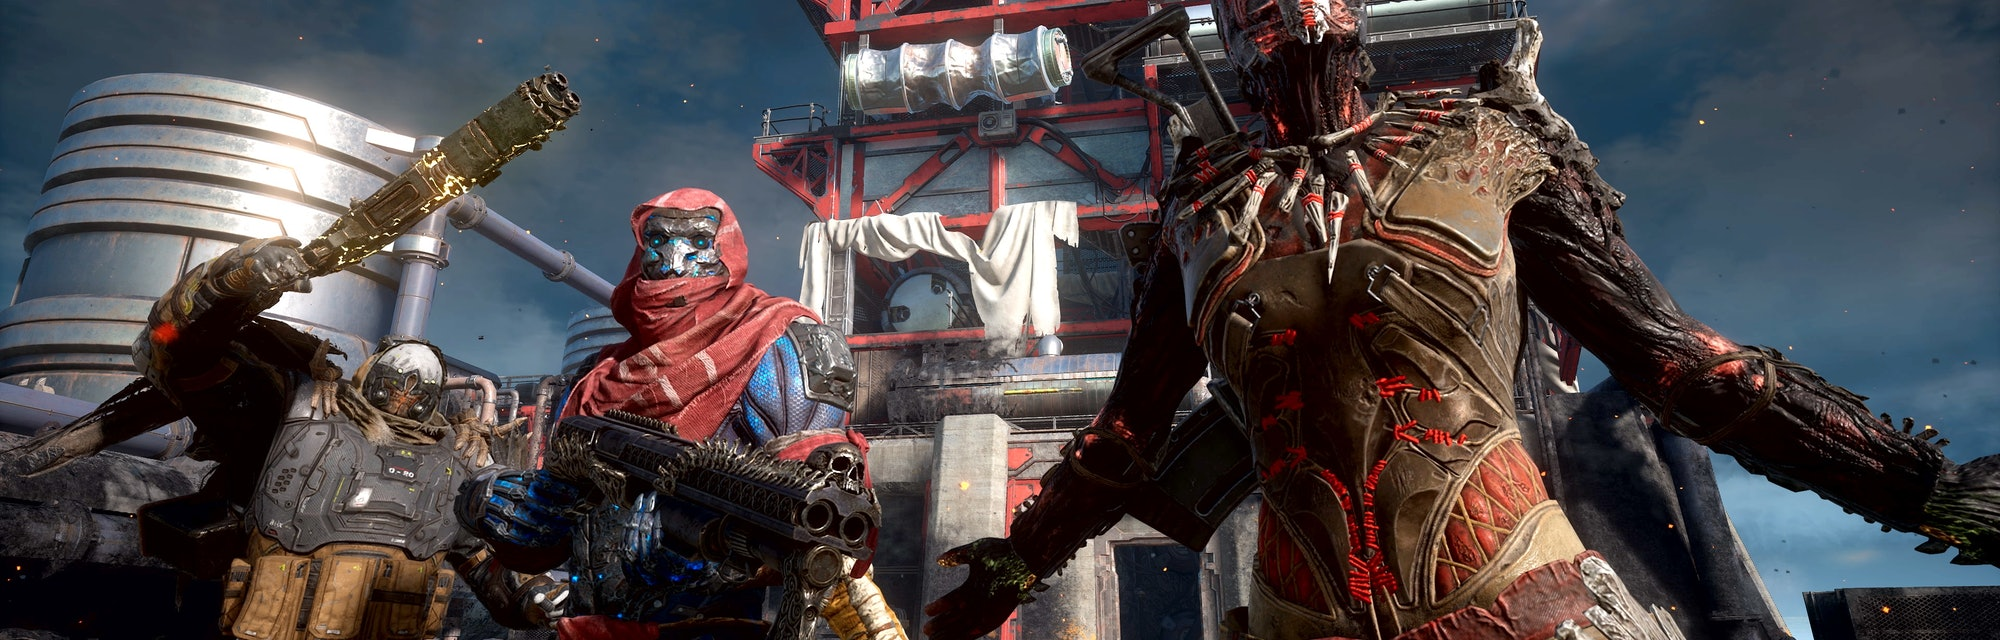 outriders launch screenshot classes